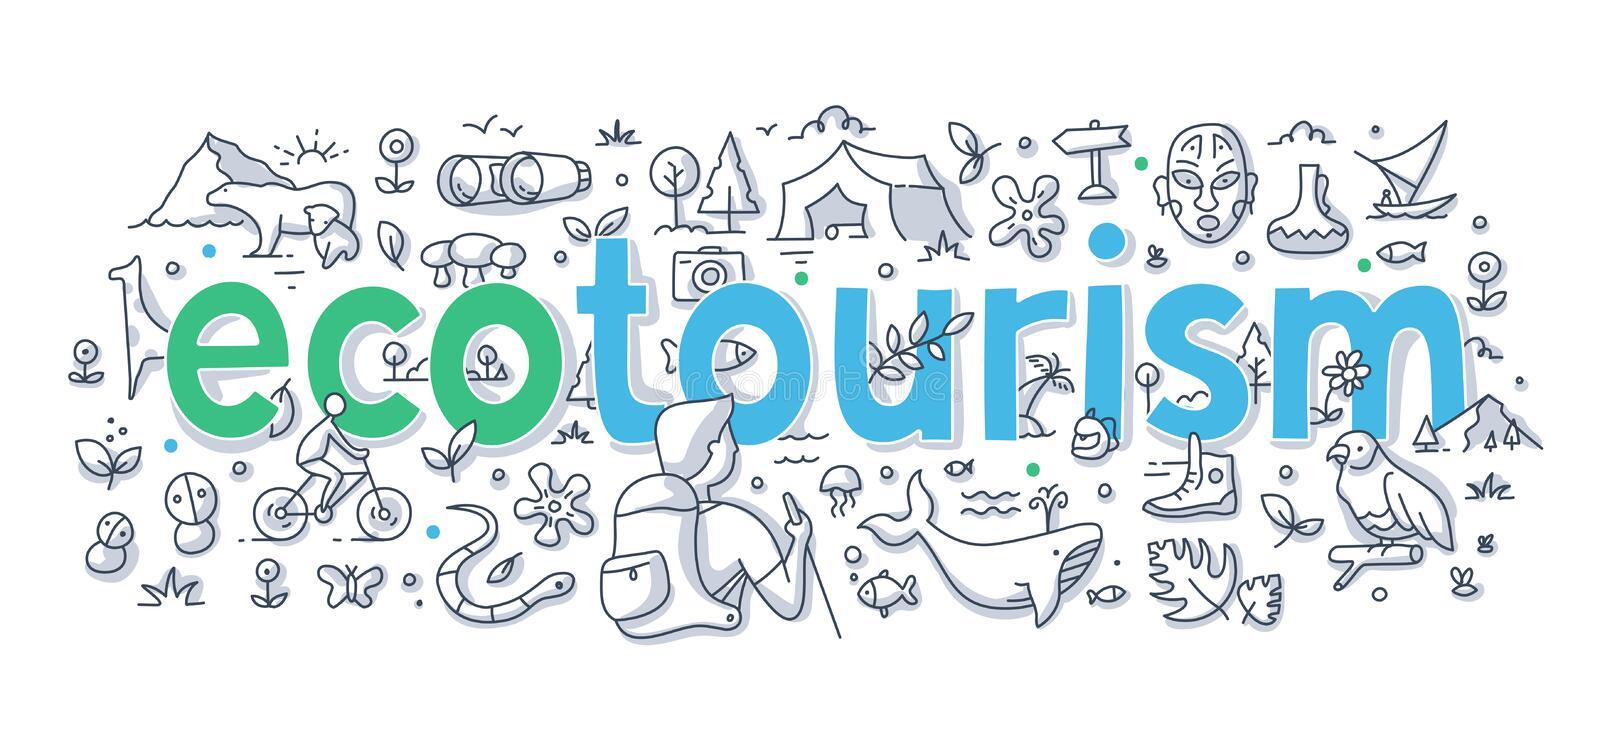 Ecotourism Word Doodle Concept stock illustration